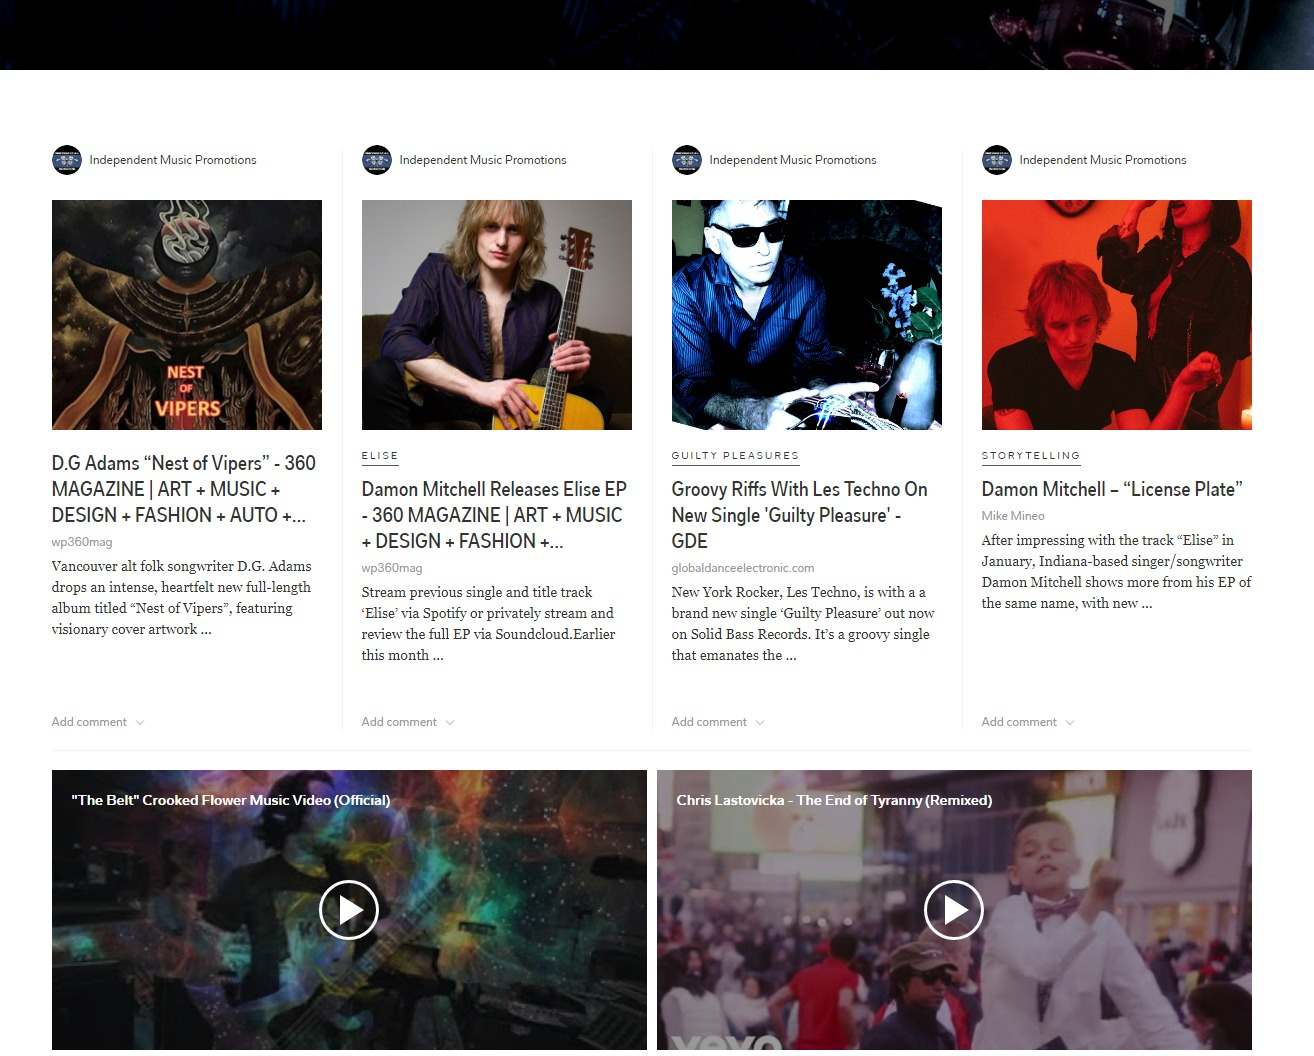 Independent Music News at Flipboard